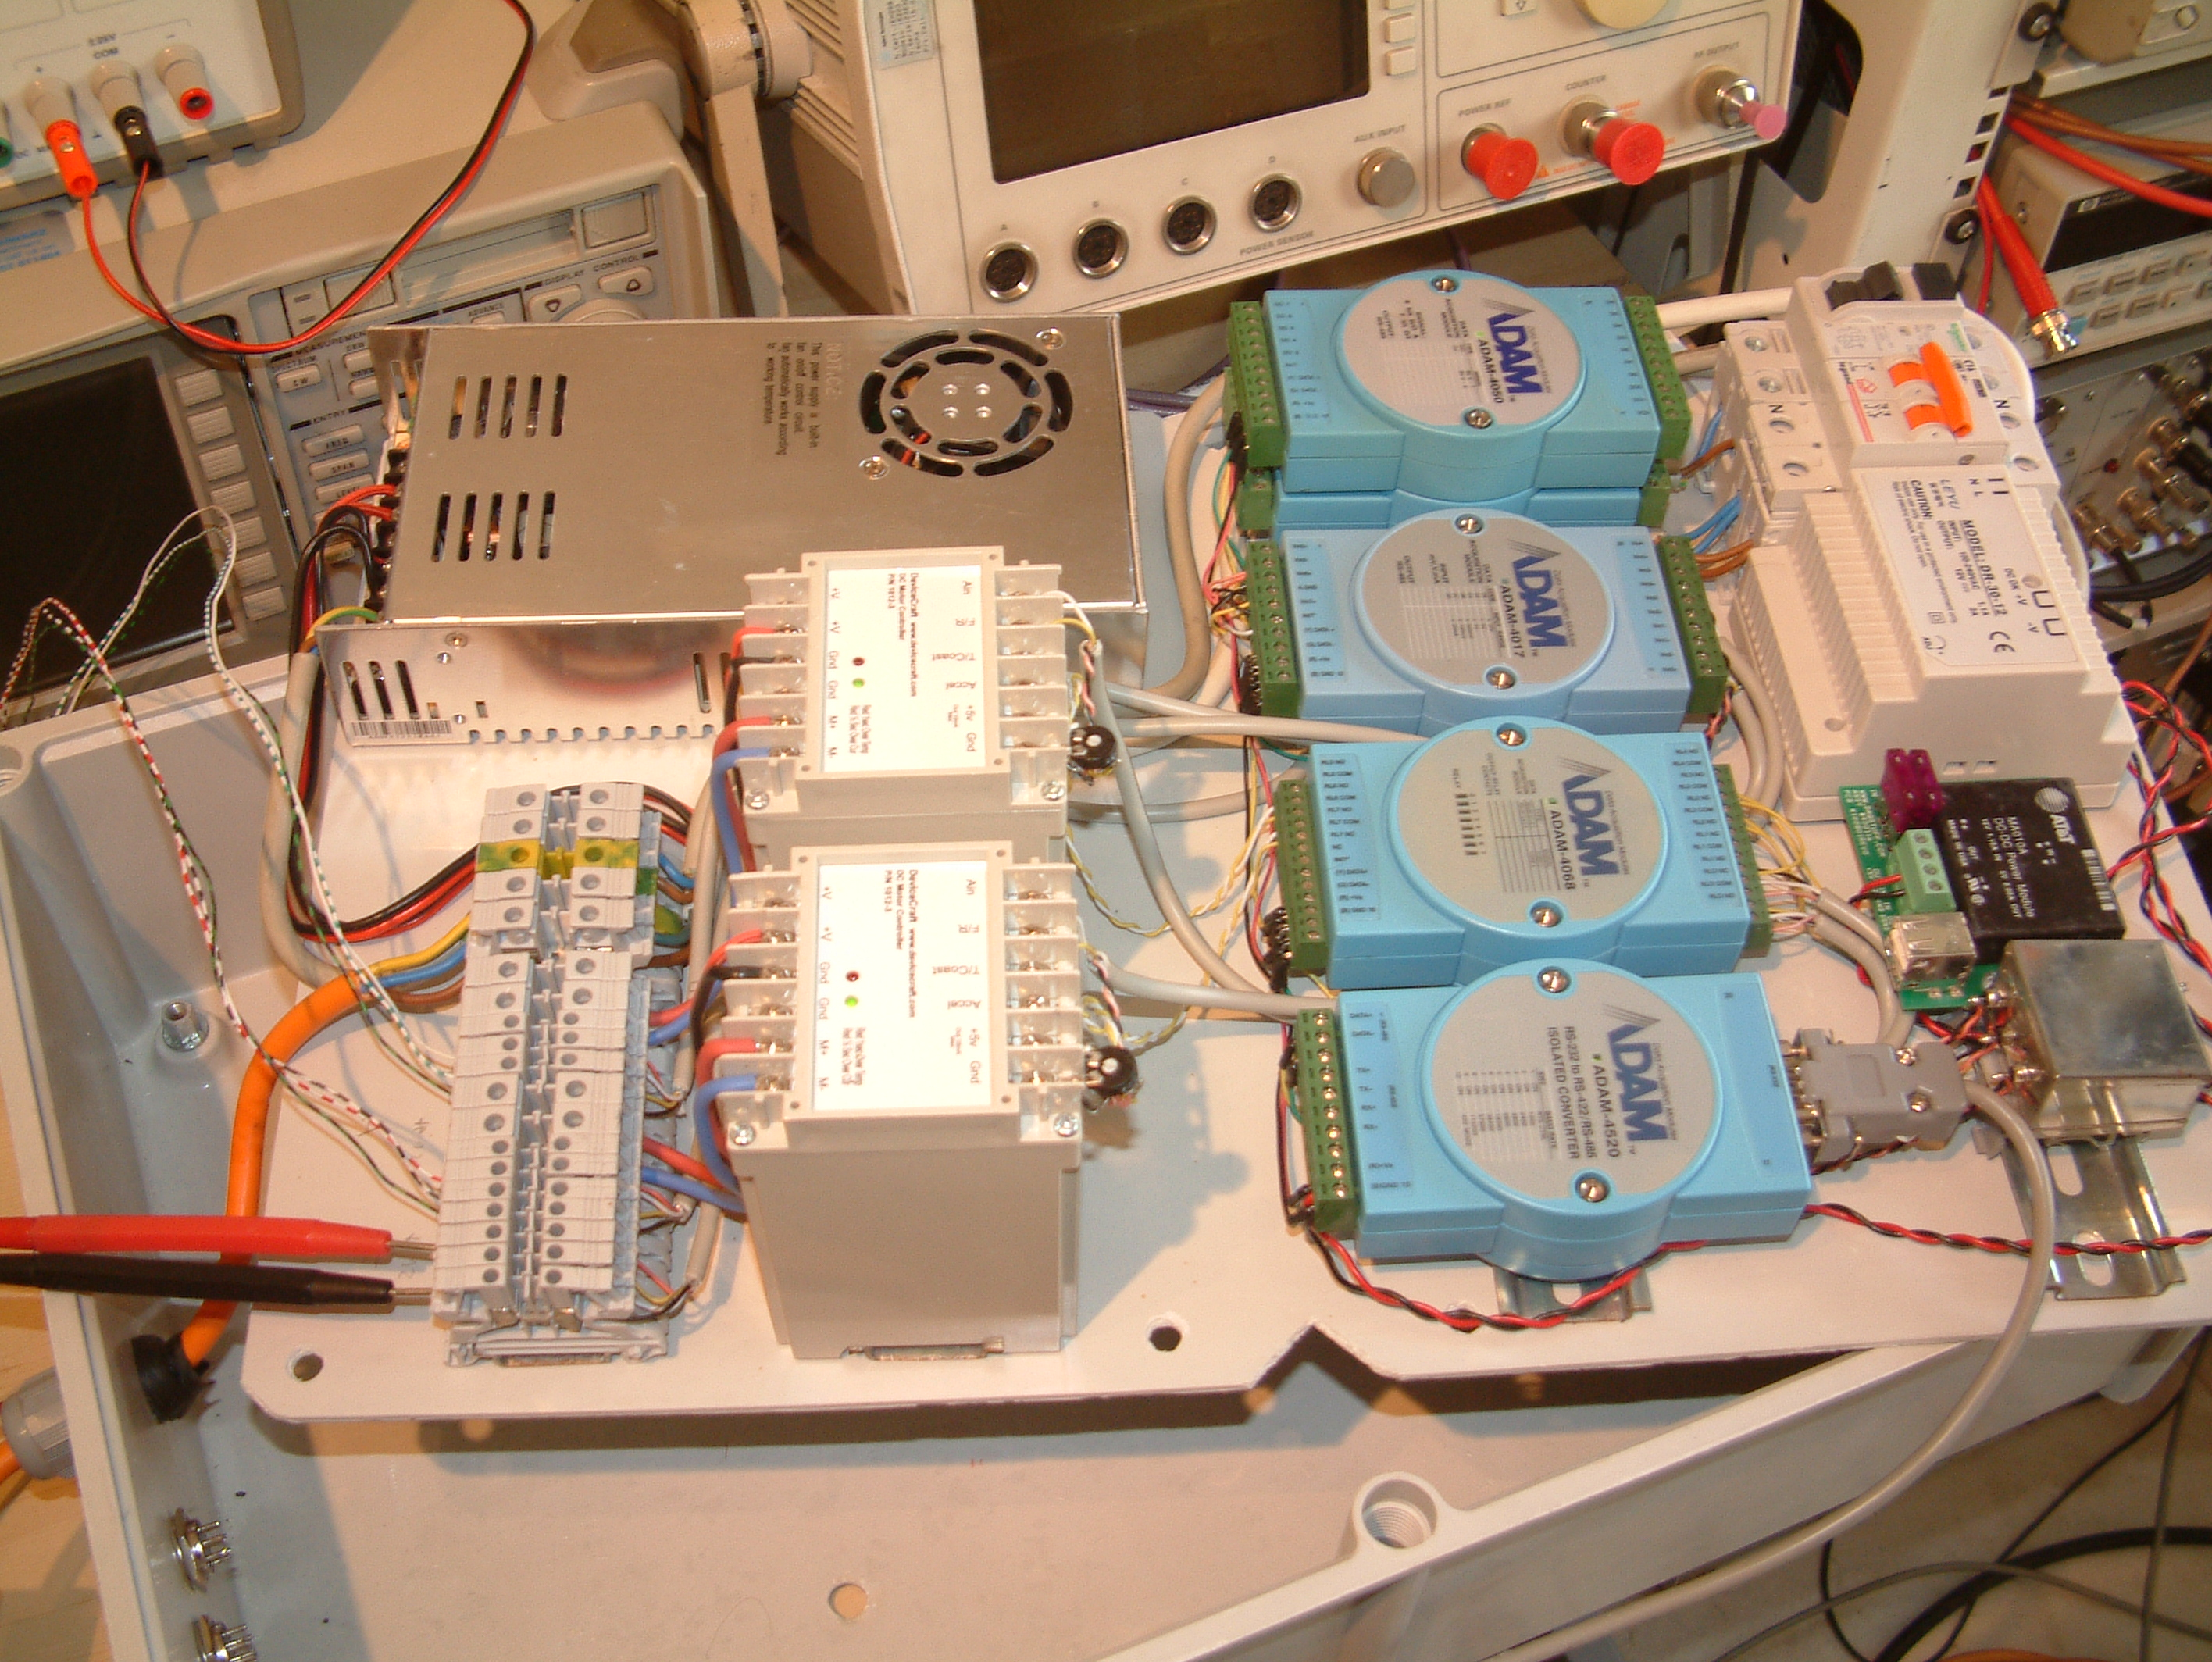 Inside Dish Controller